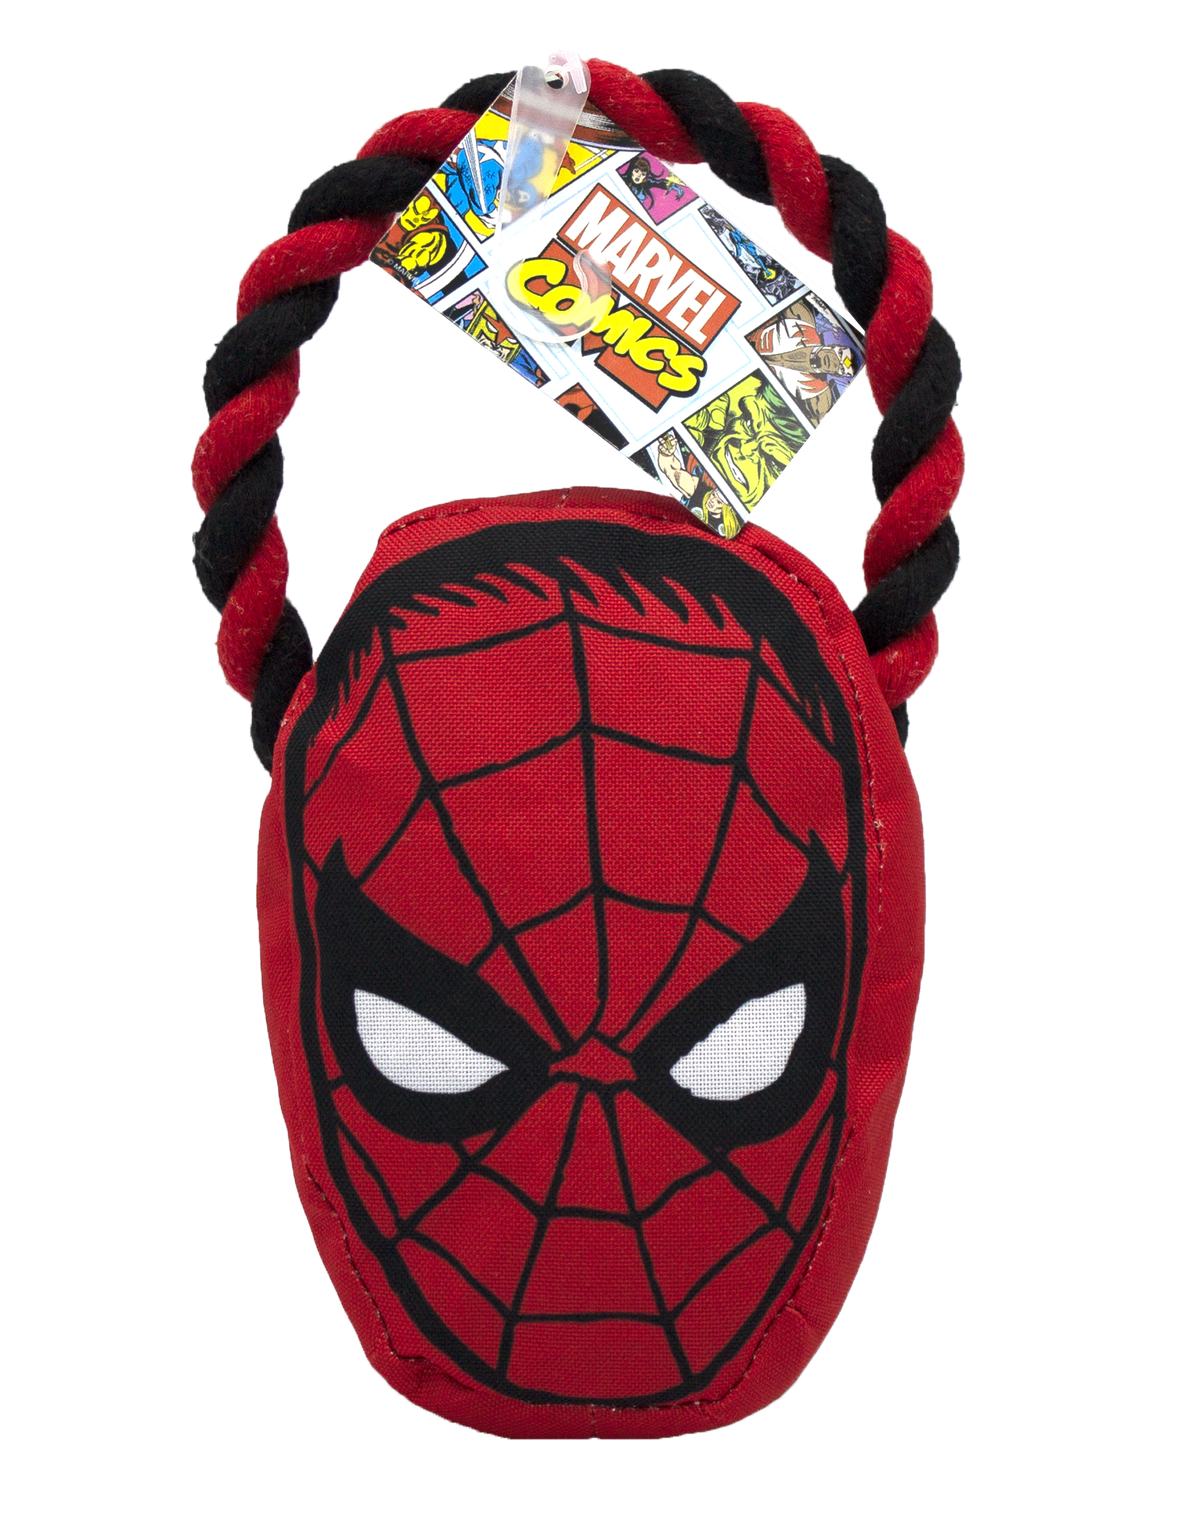 Fetch For Pets Fetch For Pets Marvel Spiderman Rope Pull Toy